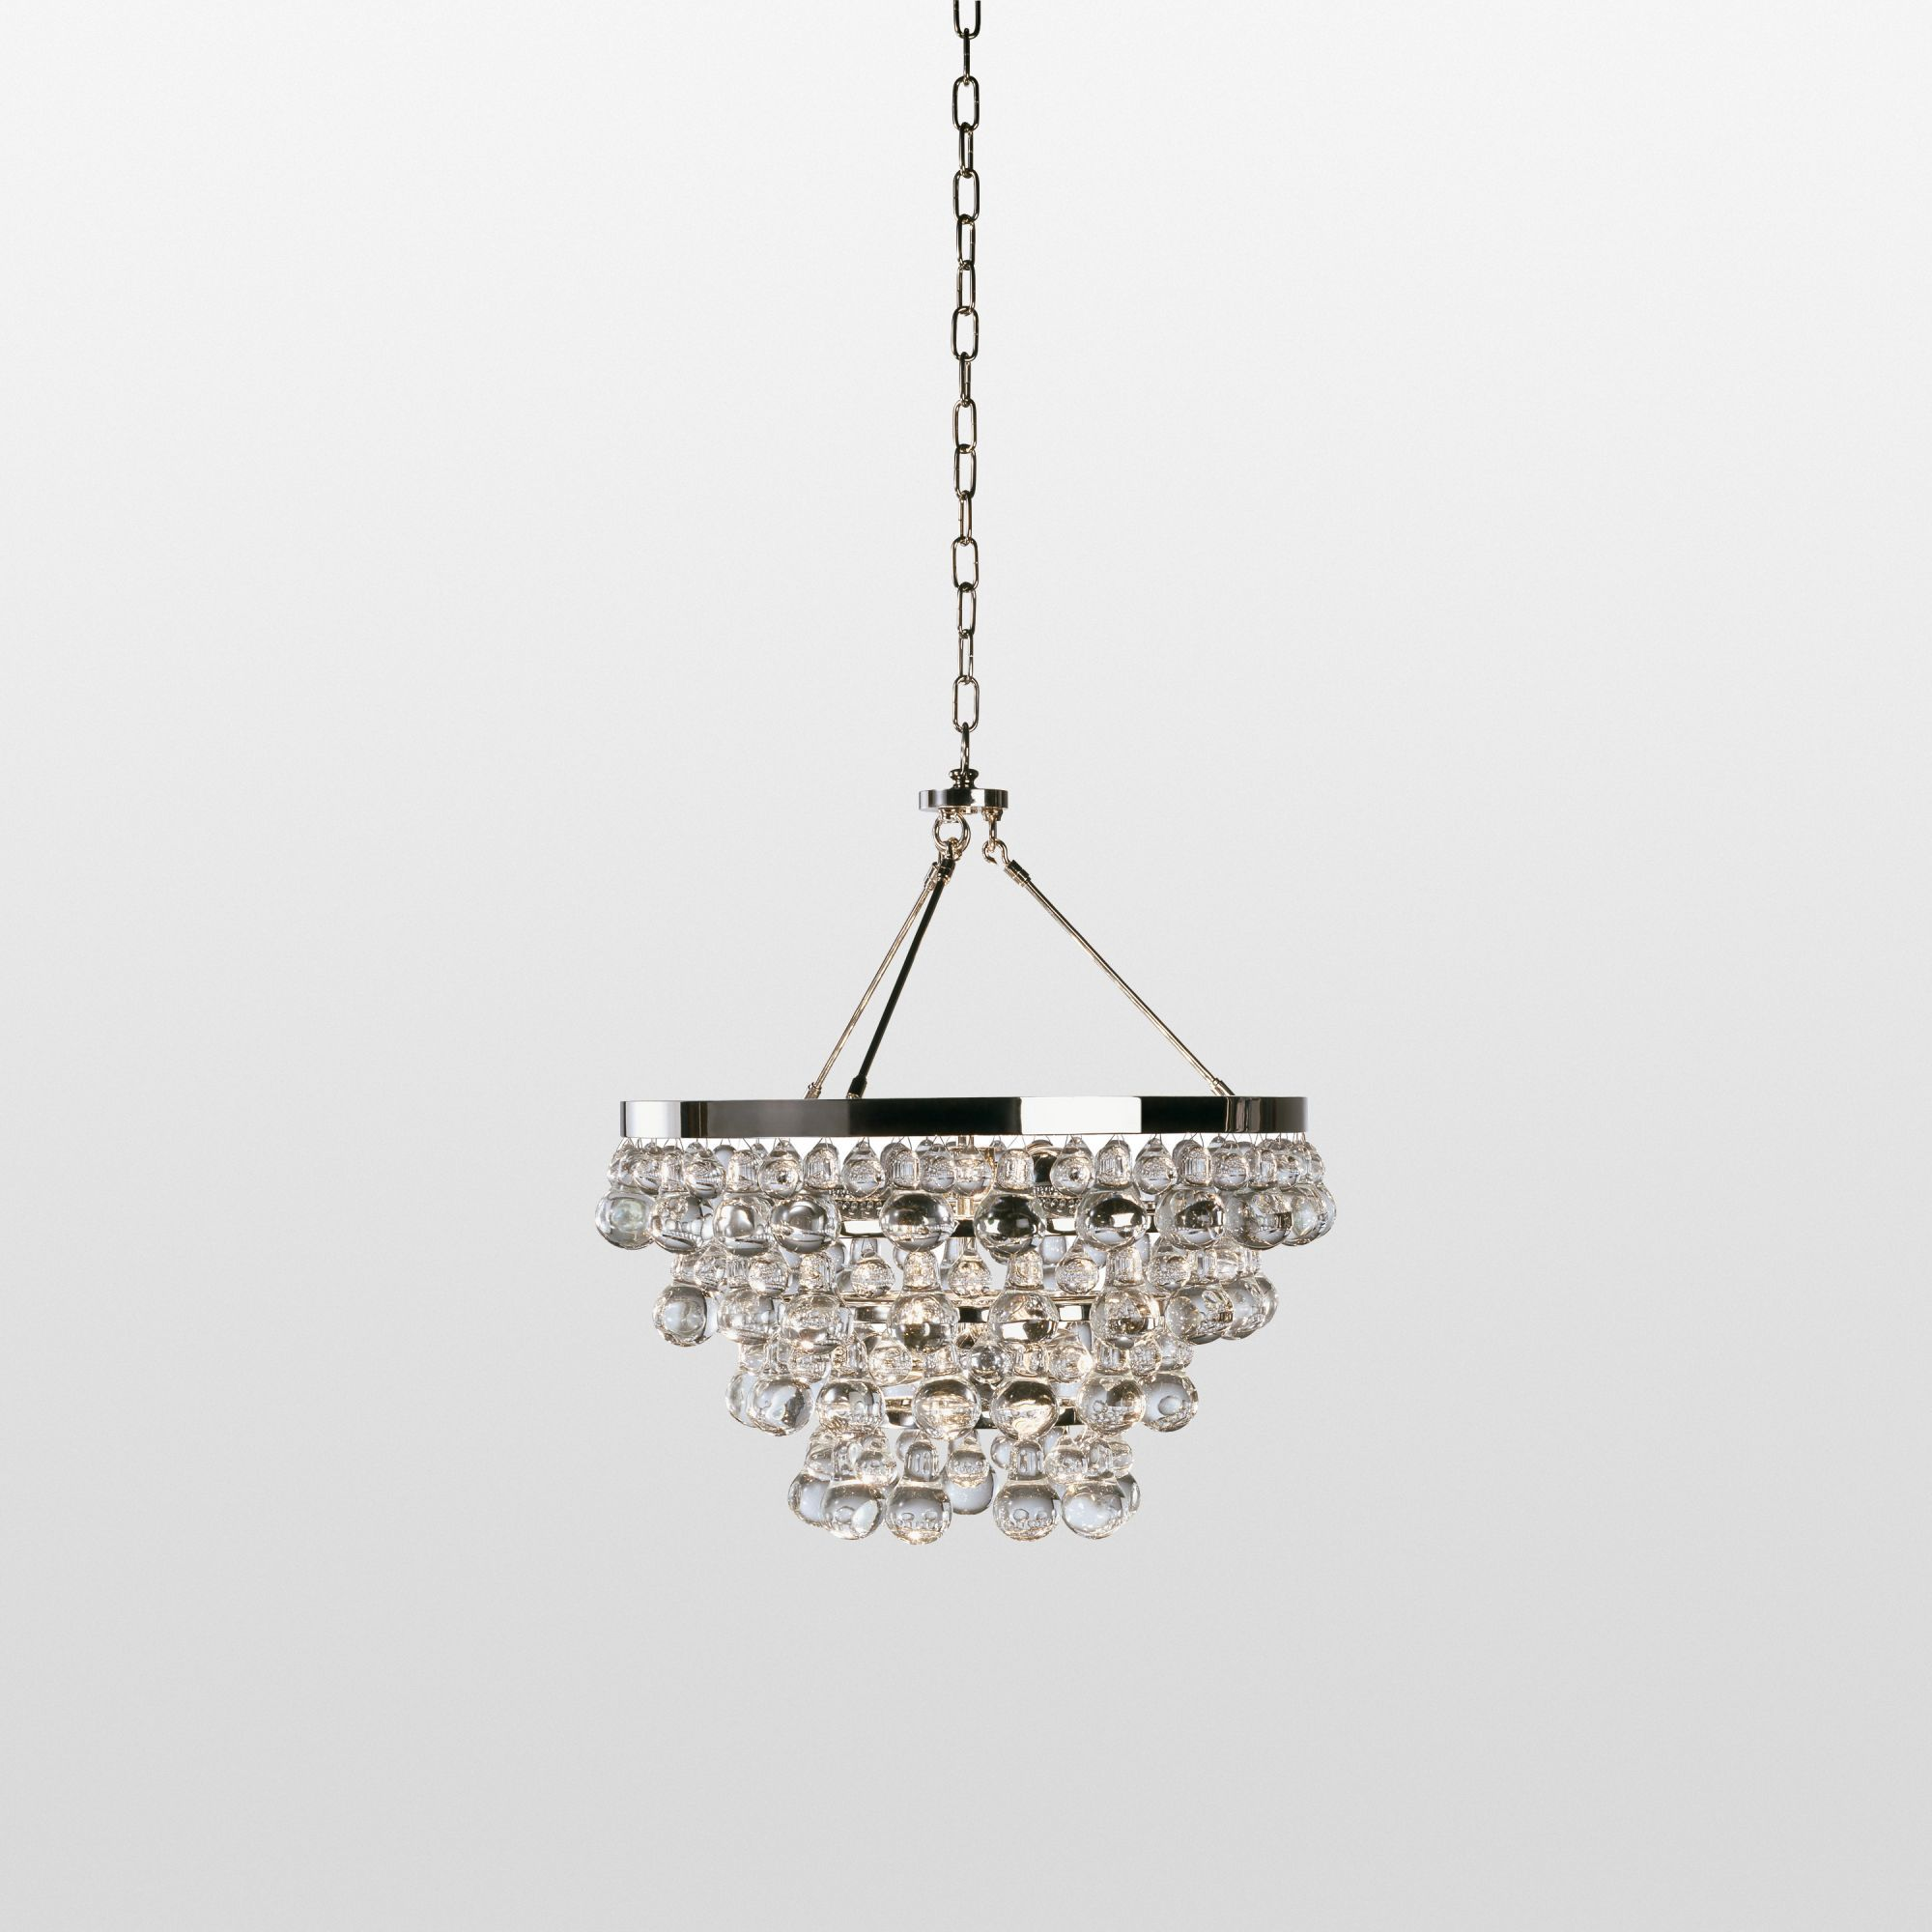 Check out the Bling Chandelier on Elte